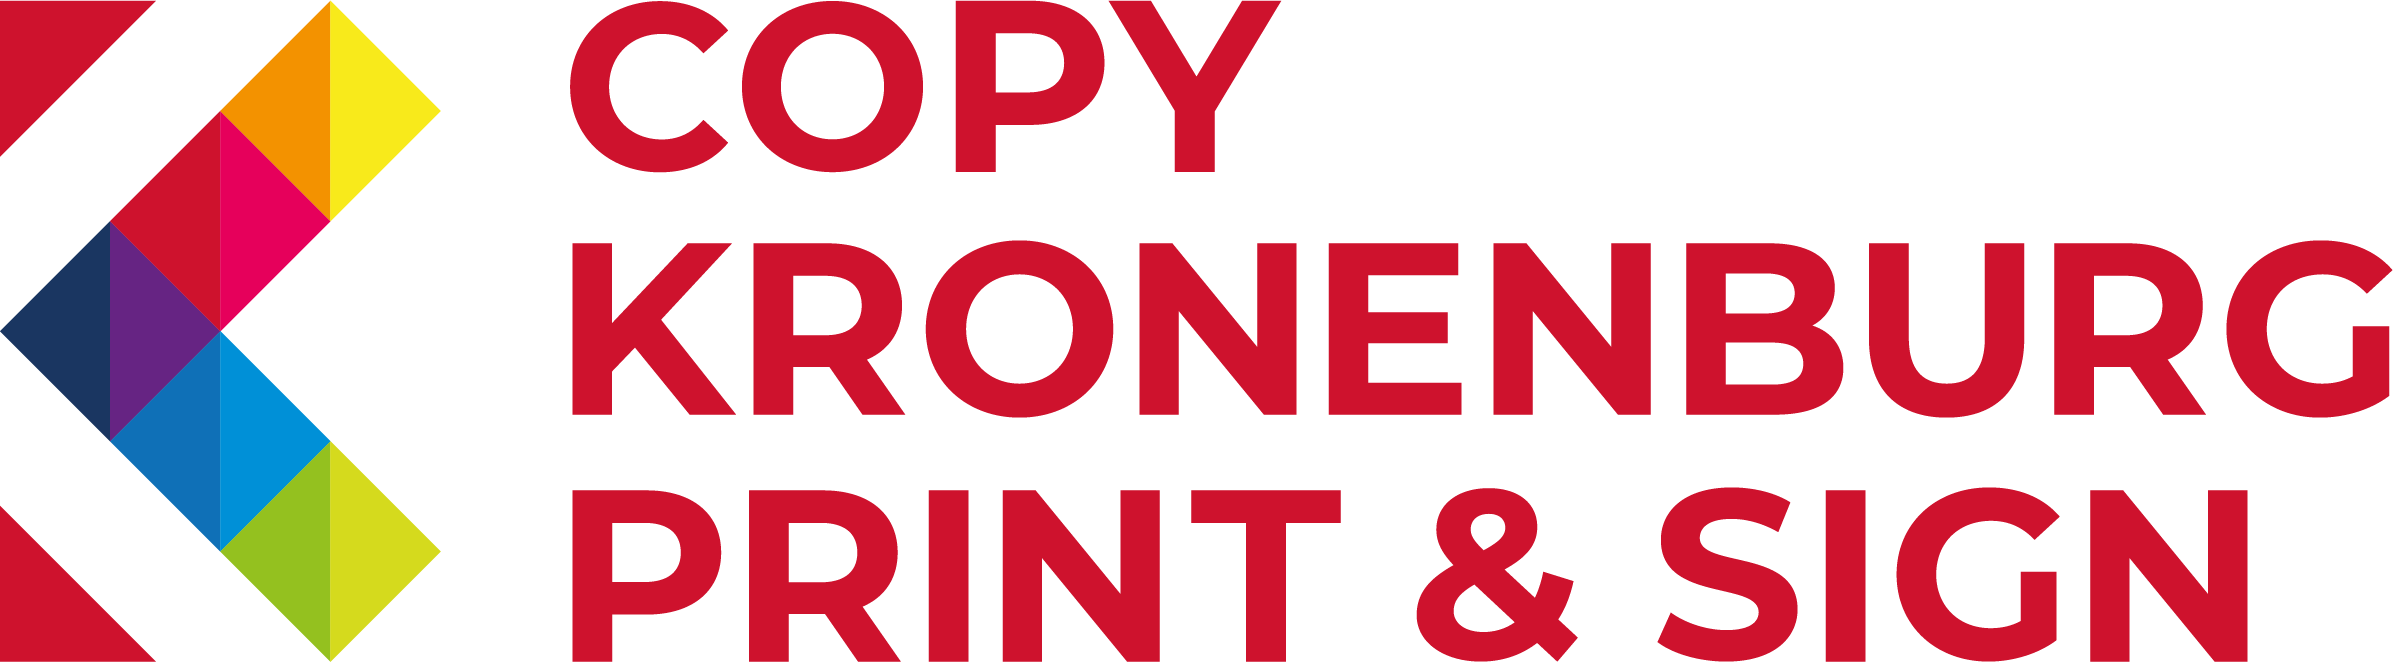 Copy Kronenburg